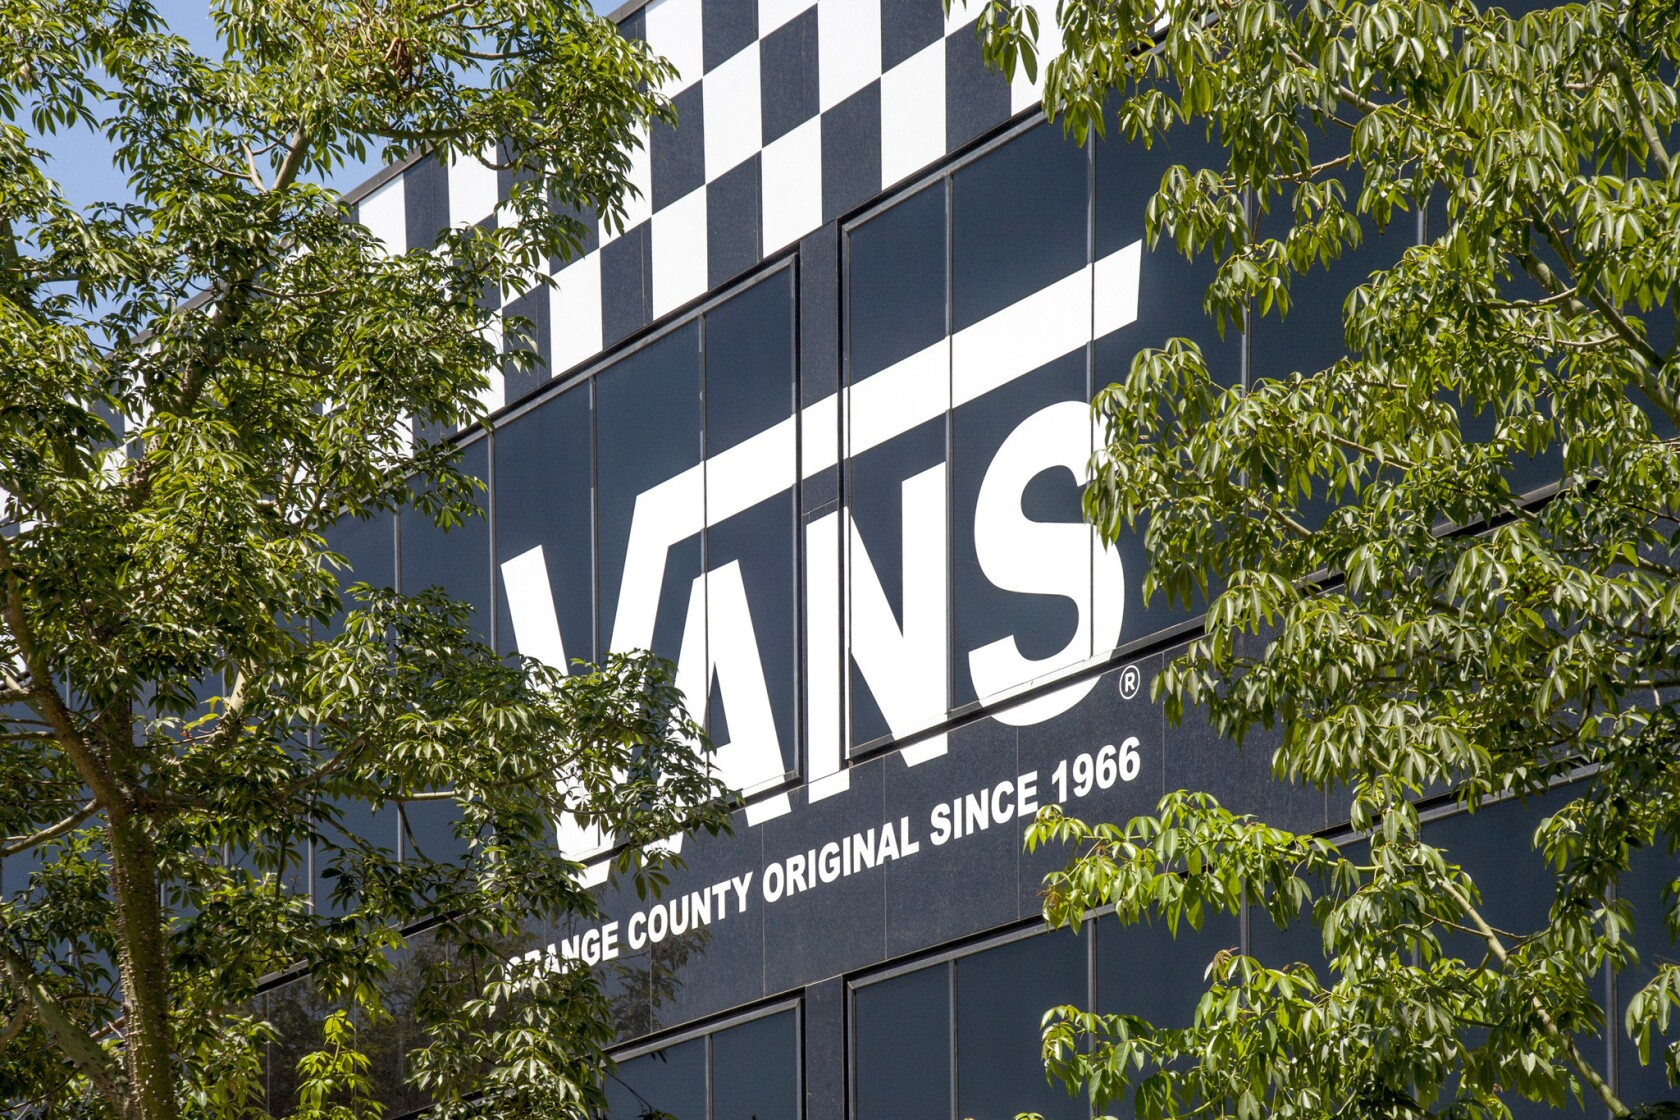 For Vans, new Costa Mesa headquarters is a nod to the past